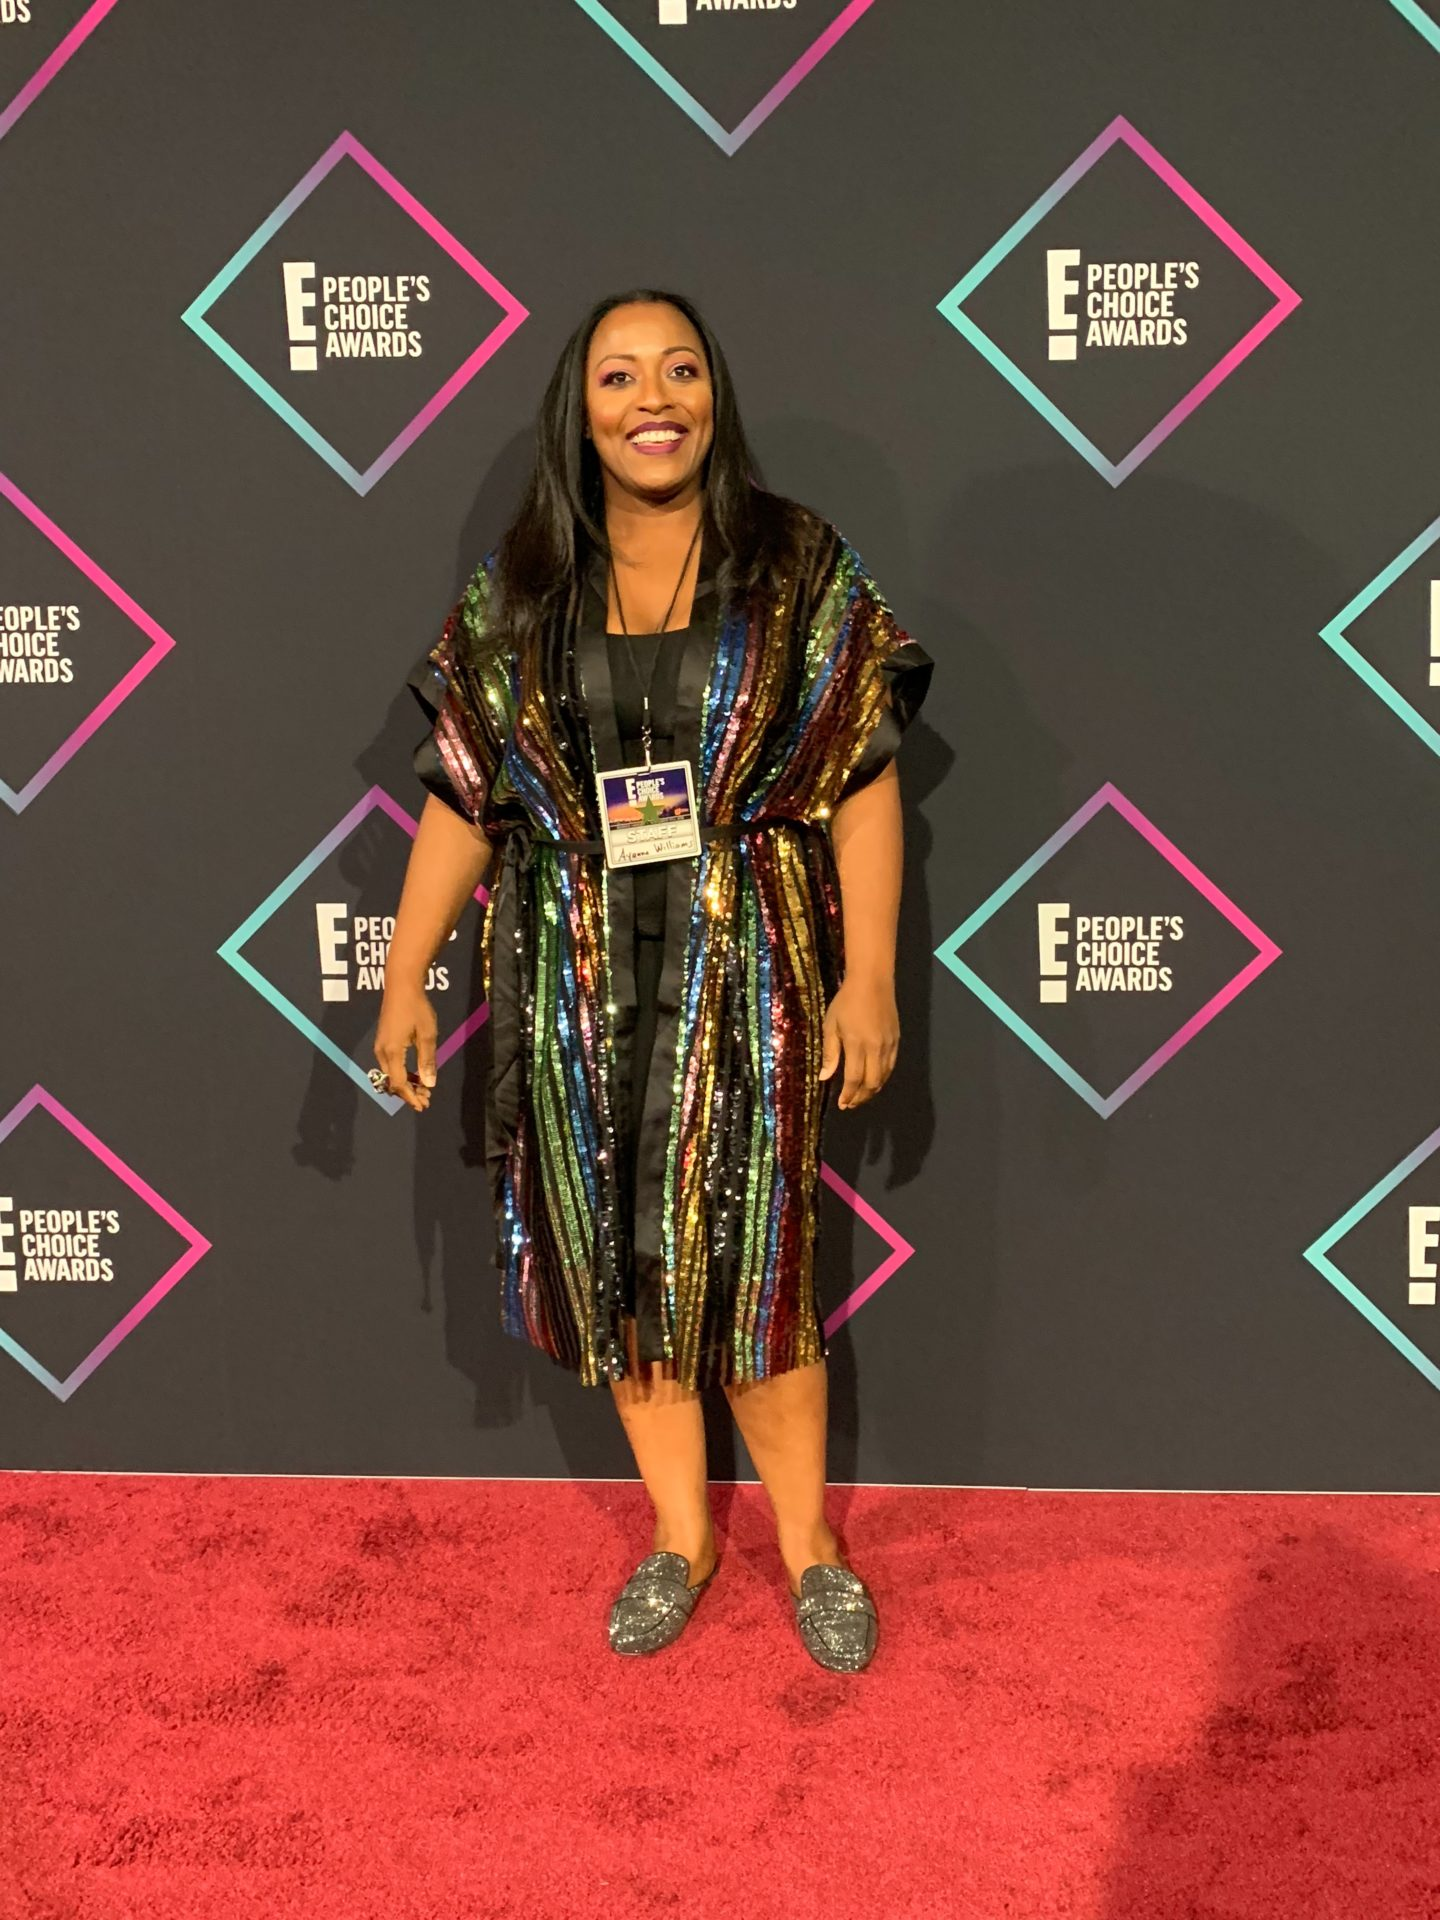 Ayanna Henderson signs on as E! People's Choice Awards 18′ Social Media Manager